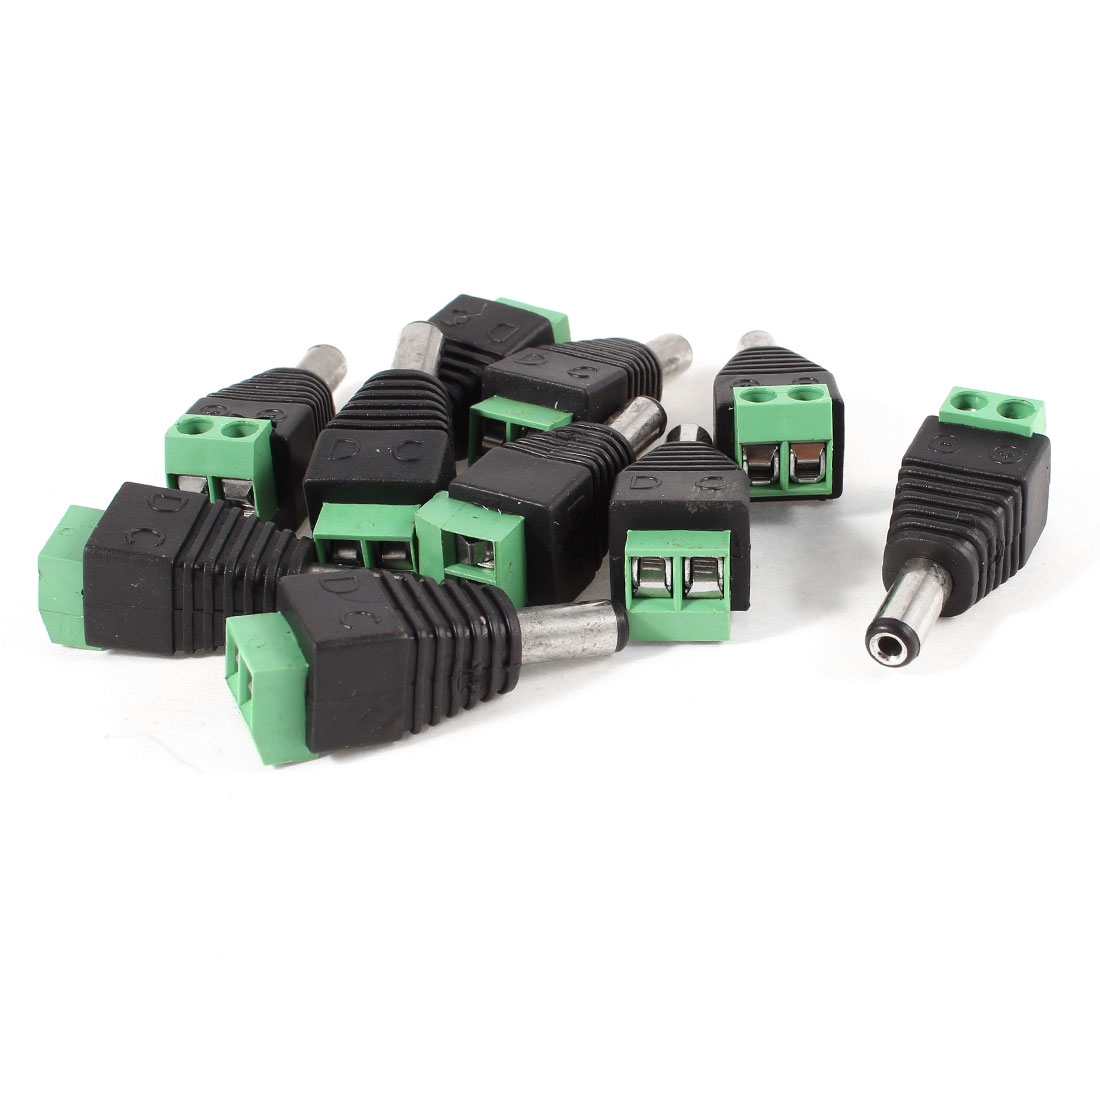 10 Pcs Black Green 5.5x2.1mm Male CCTV DC Power Jack Terminal Connector